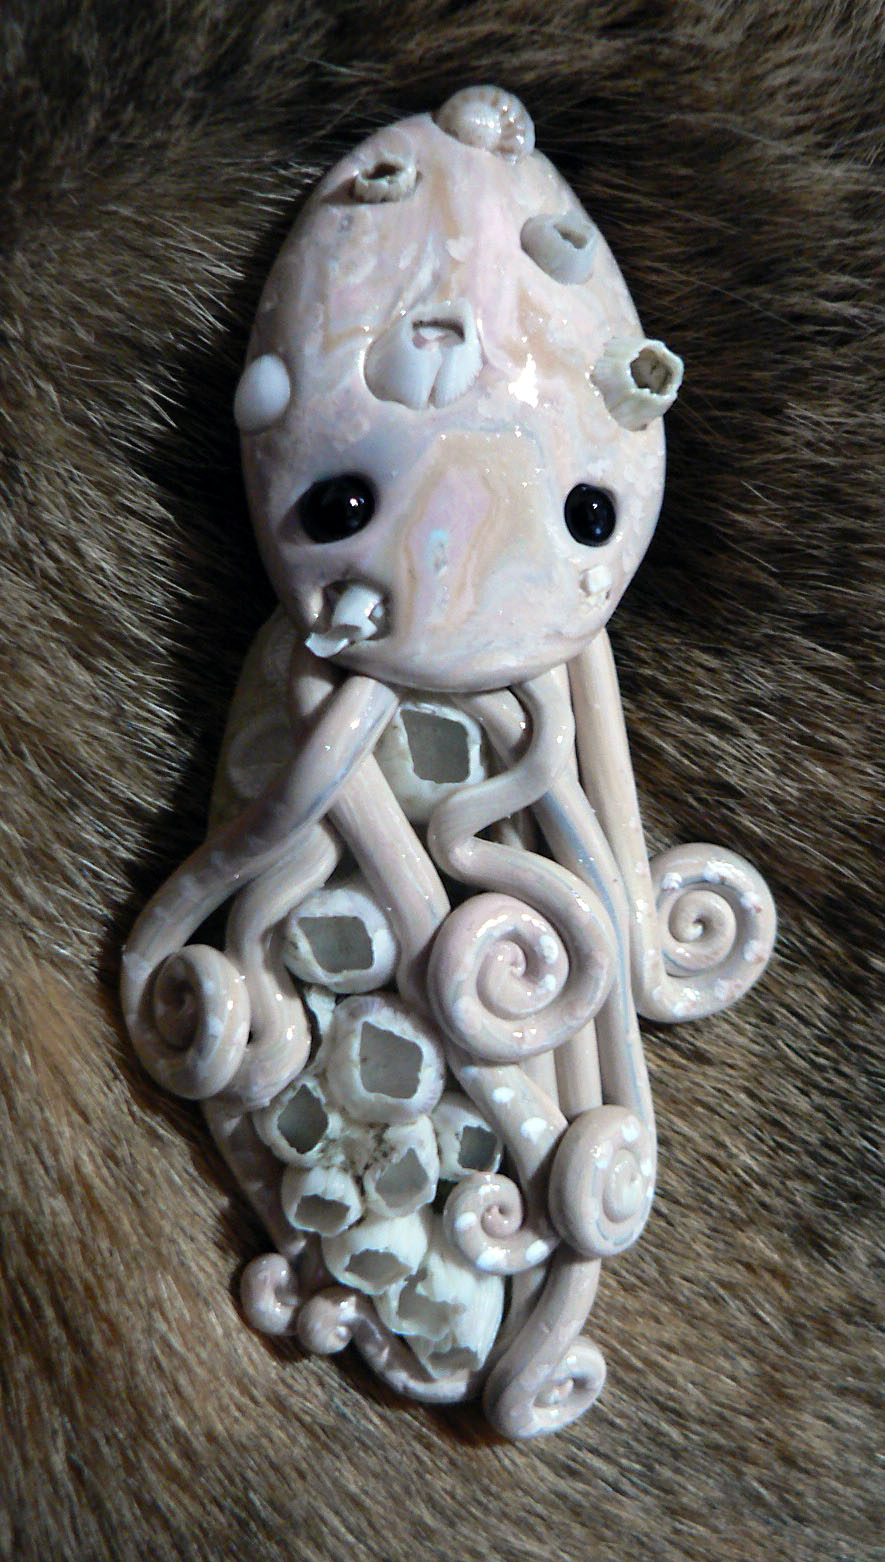 barnacle_octopus_magnet_by_blackmagdalena-d4fbp3c